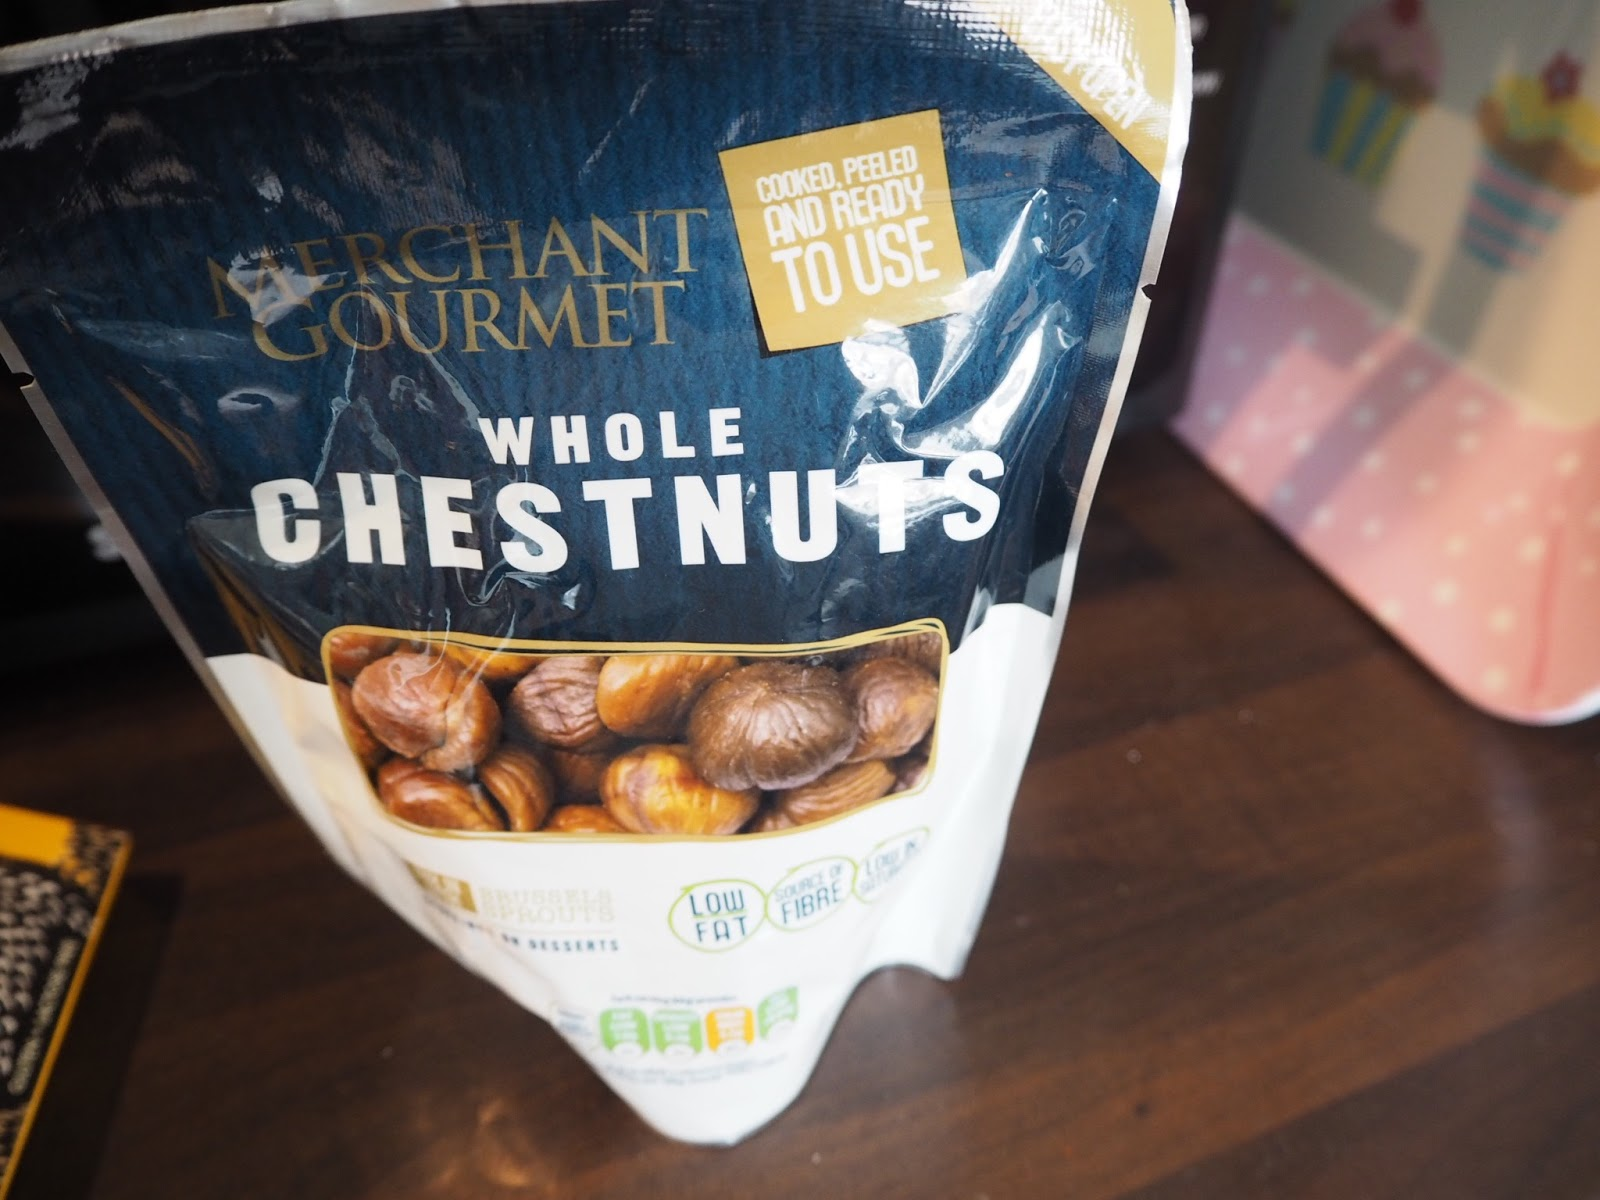 packet of Merchant Gourmet whole Chestnuts